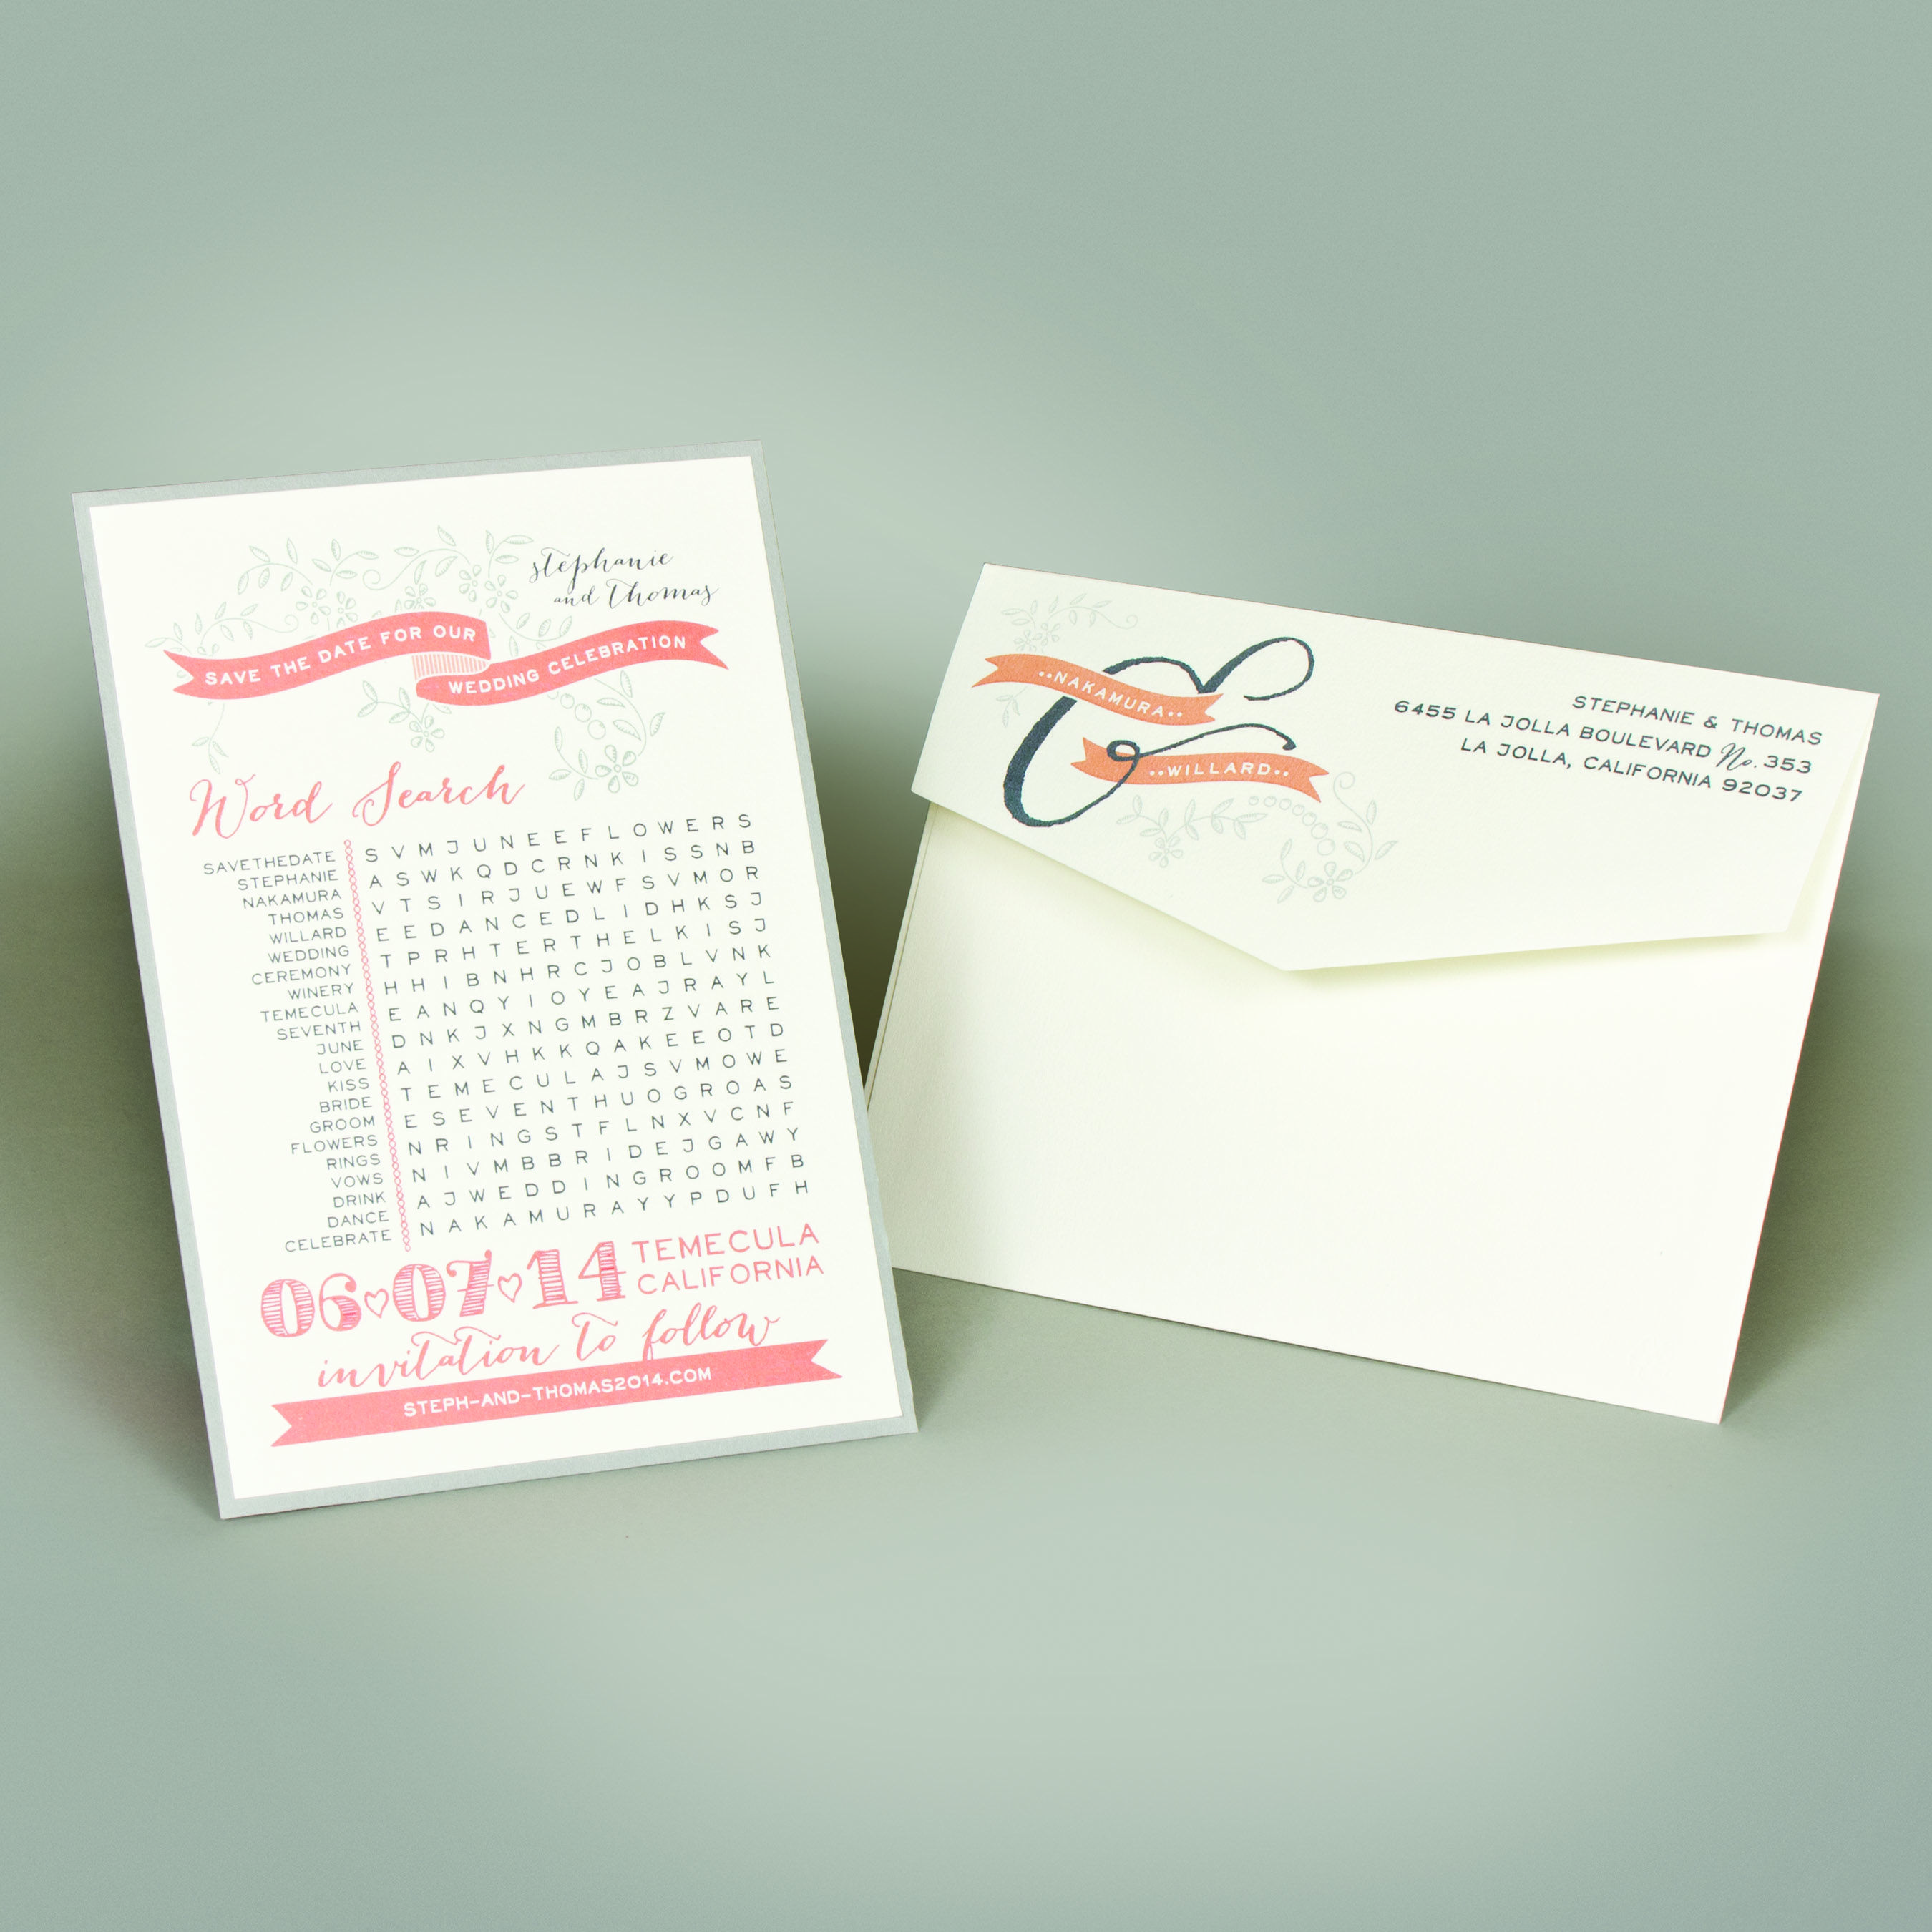 Puzzle lovers everywhere will love the brain game challenge of a word search. On this save the date, Indigo Envelope created a customized word search for the engaged couple. A little nerdy? Perhaps. But we think it's also a fun and different idea your guests will enjoy. #nerdyweddings #savethedate #indigoenvelope